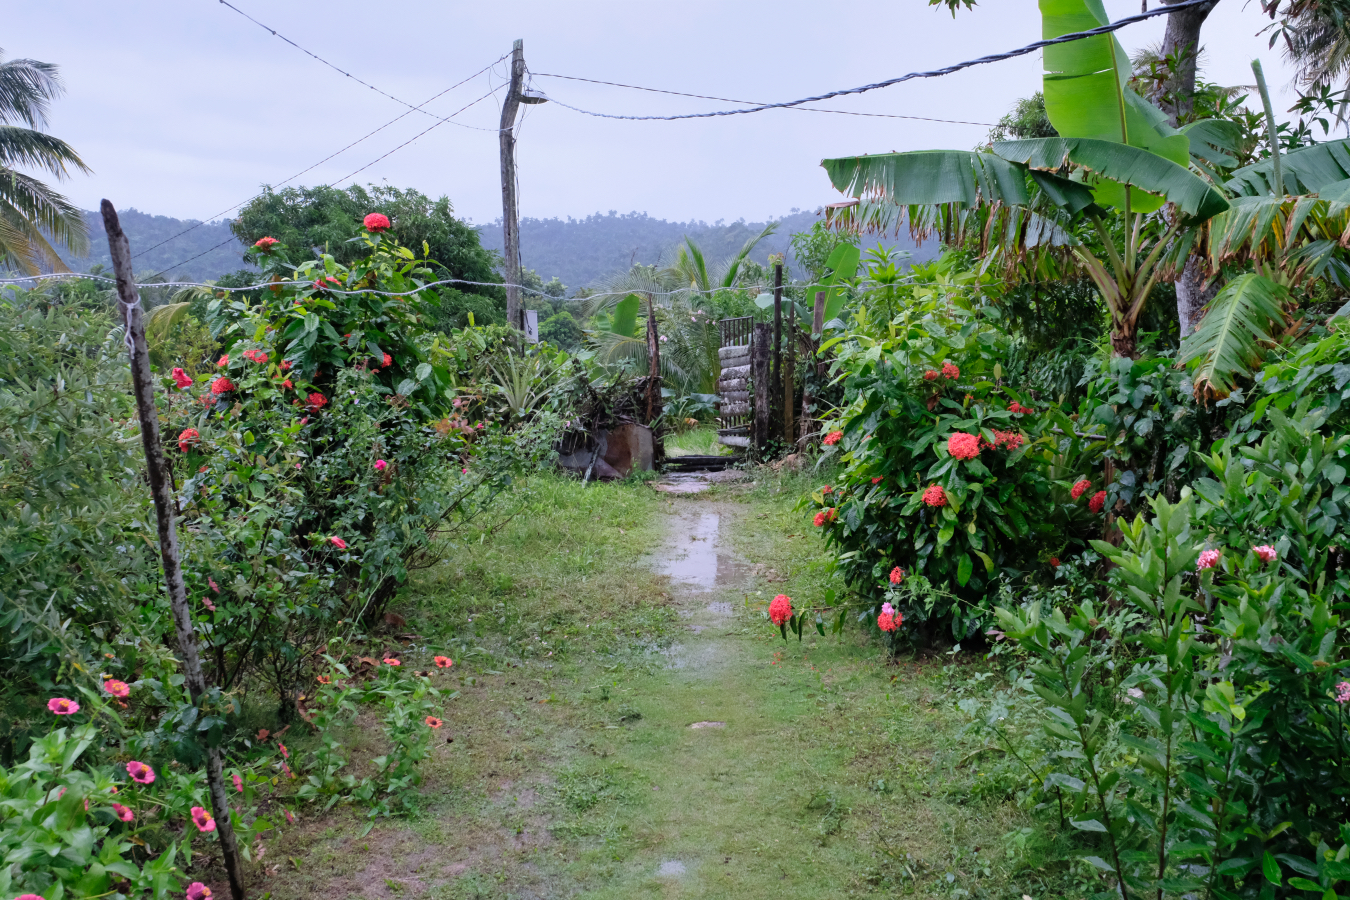 Path to the front gate, surrounded by tropical flowers